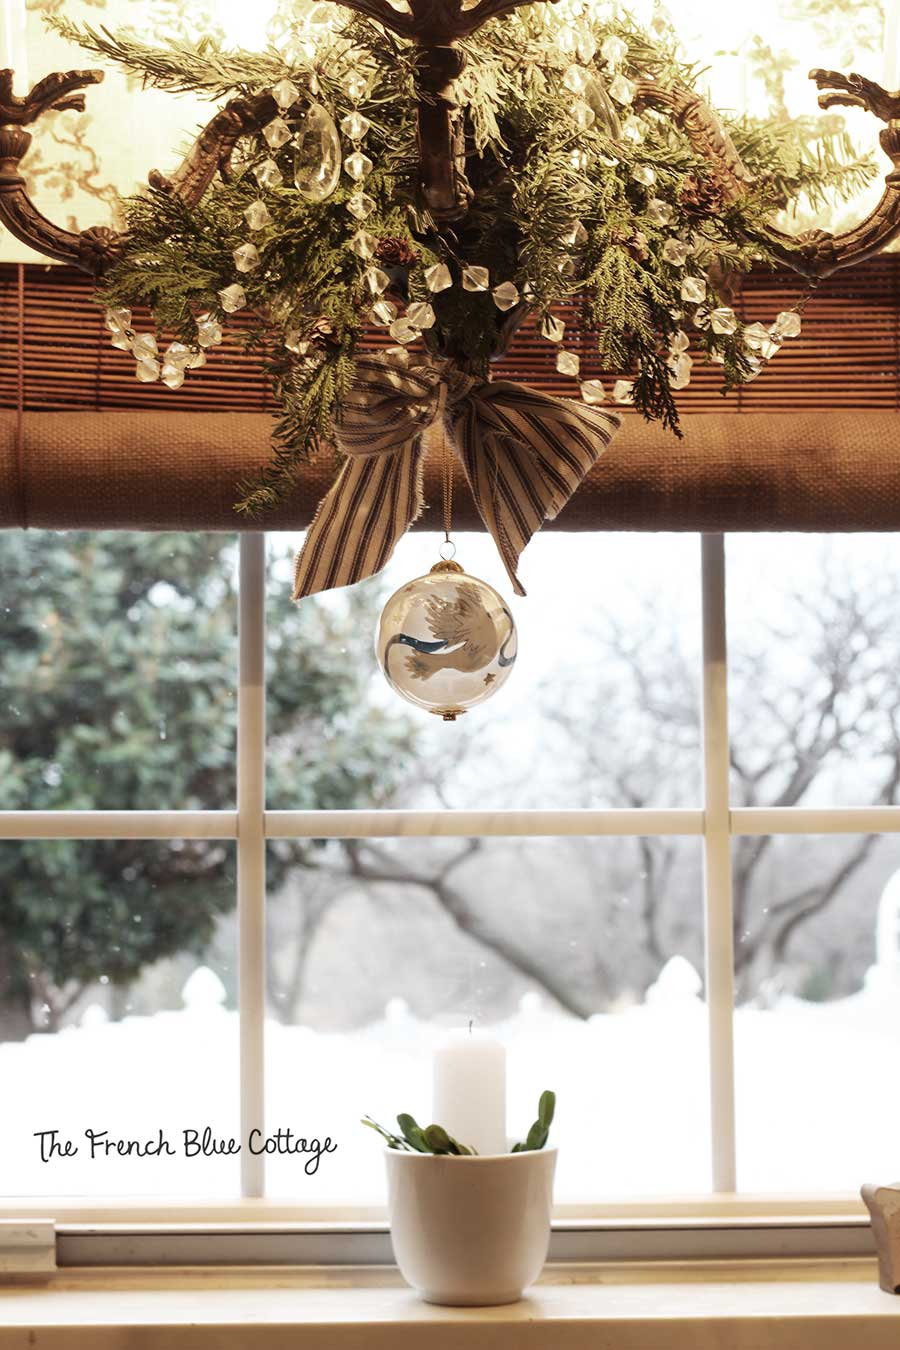 Christmas ornament hanging from the kitchen window chandelier.